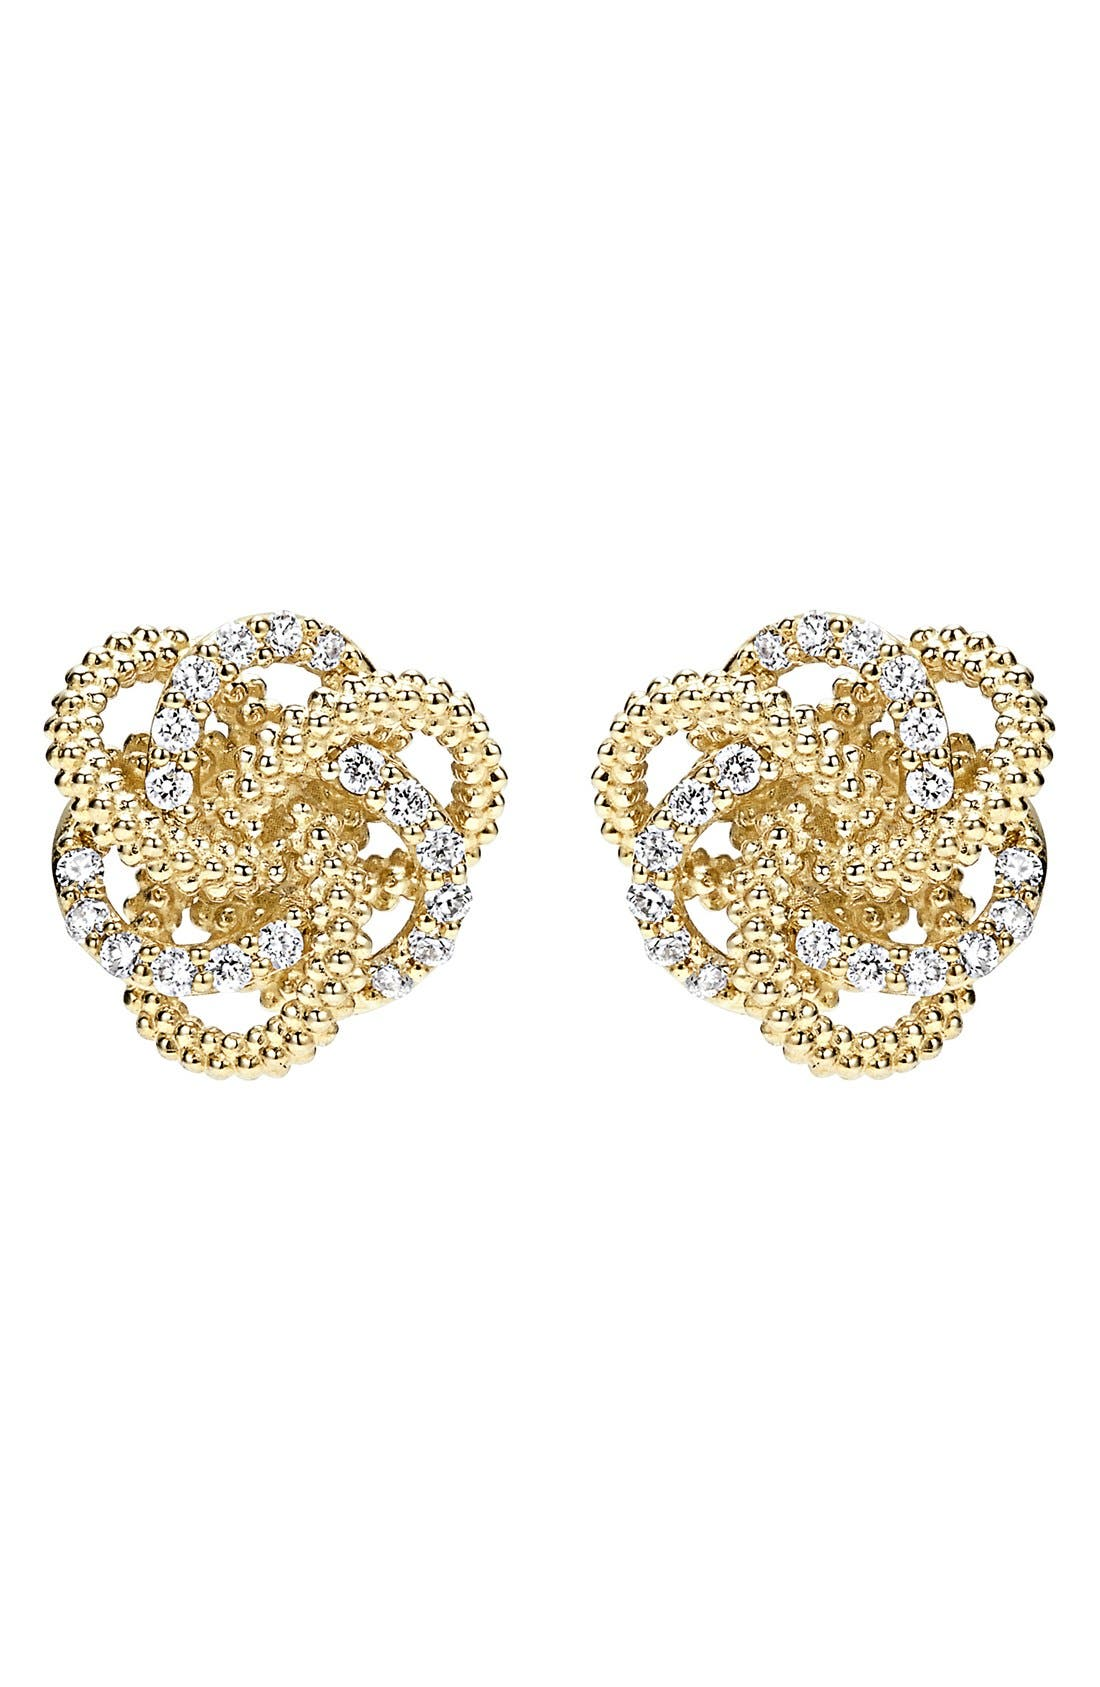 'Love Knot' Diamond Stud Earrings,                             Alternate thumbnail 3, color,                             GOLD